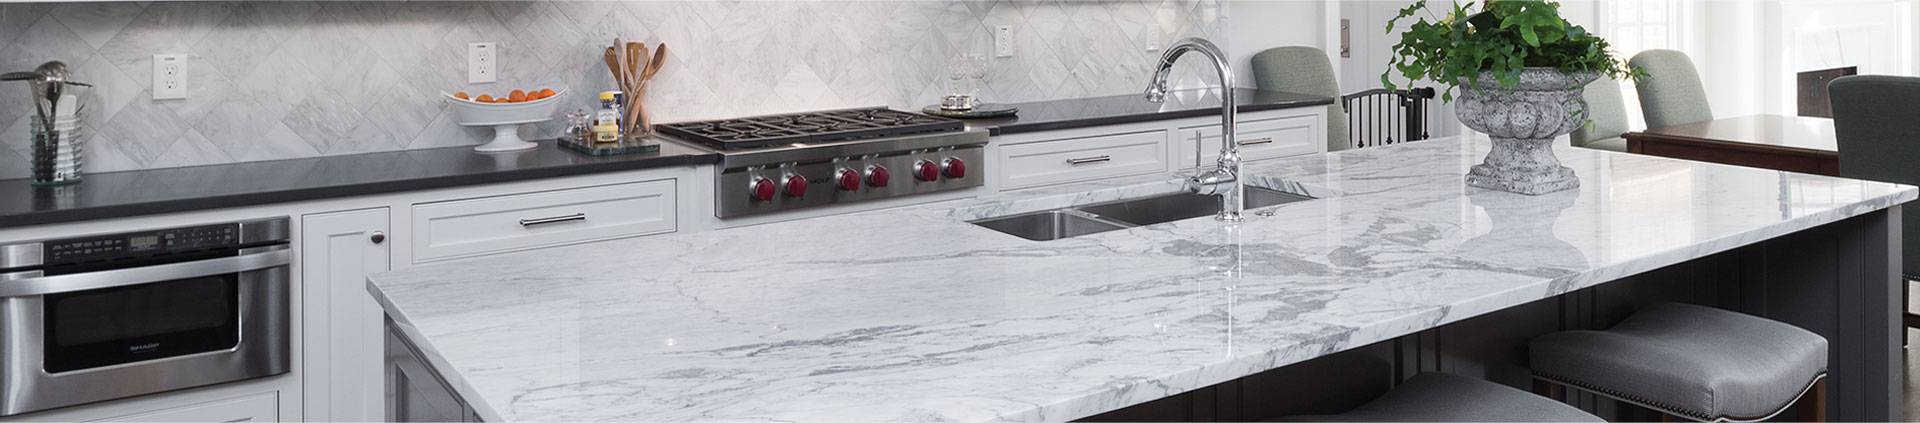 contemporary urban design, white countertops with veins